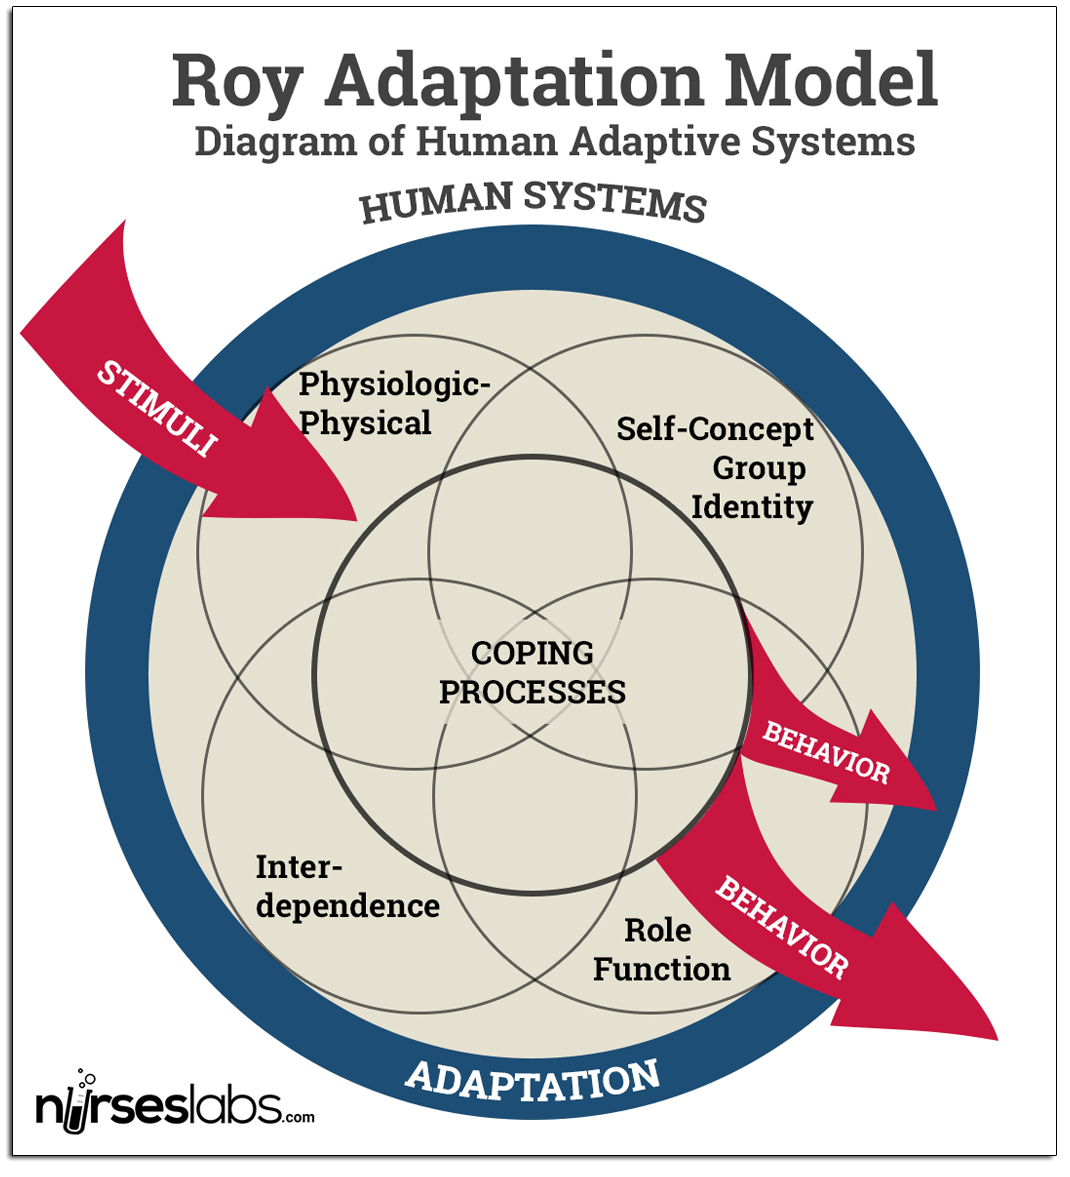 Diagrammatic Representation of Roy's Human Adaptive Systems.